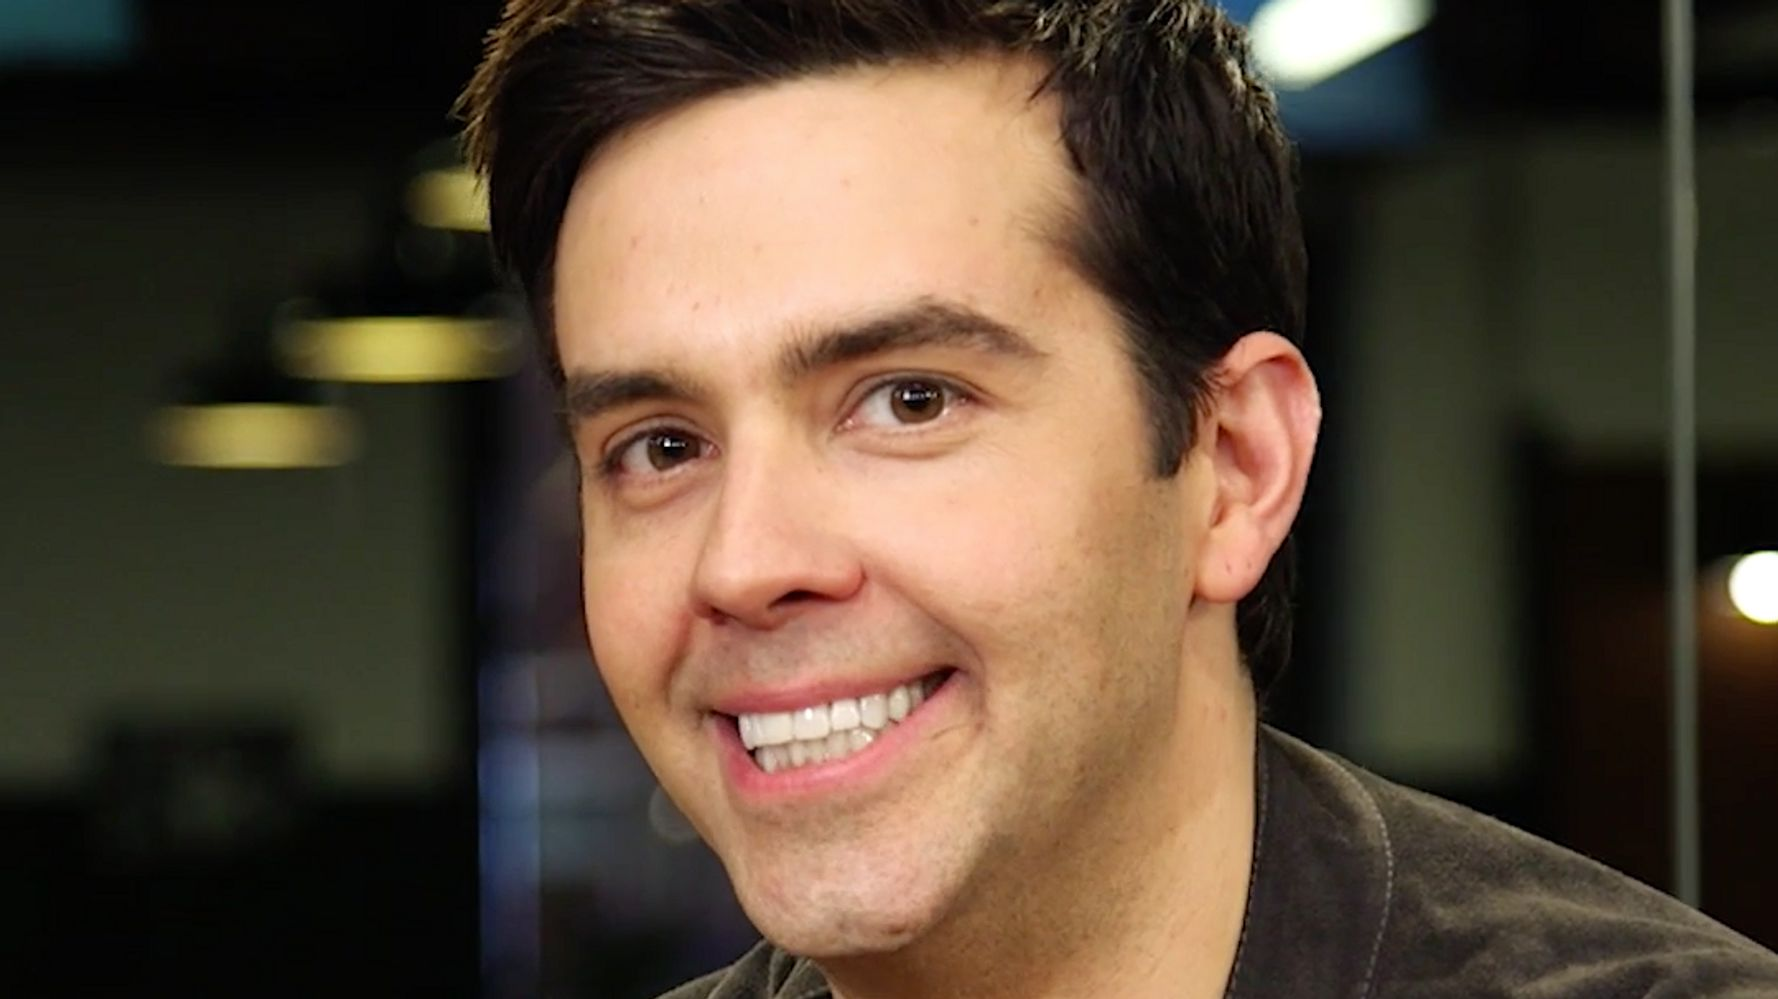 Carbonaro Effect' Star Reveals How Being Gay Changed His World View